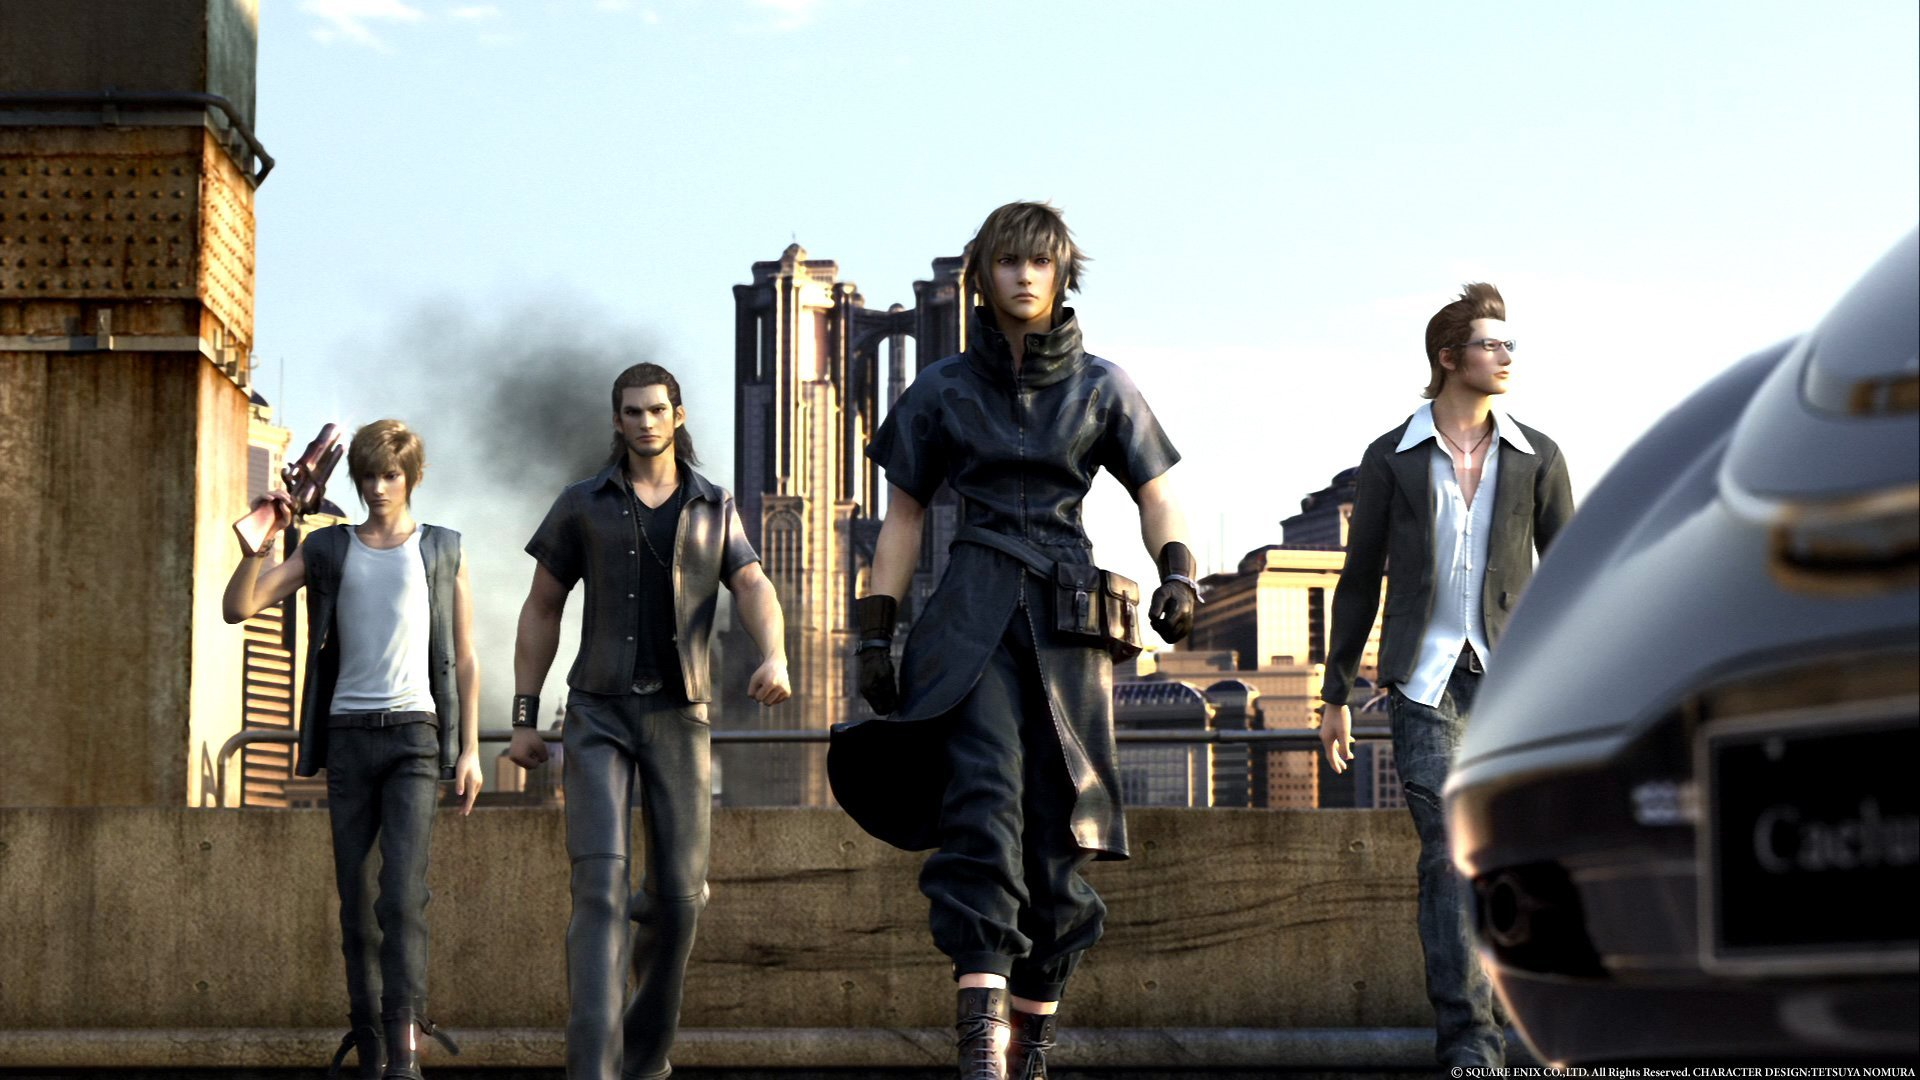 Direct-feed TGS Agito, Versus XIII gameplay footage